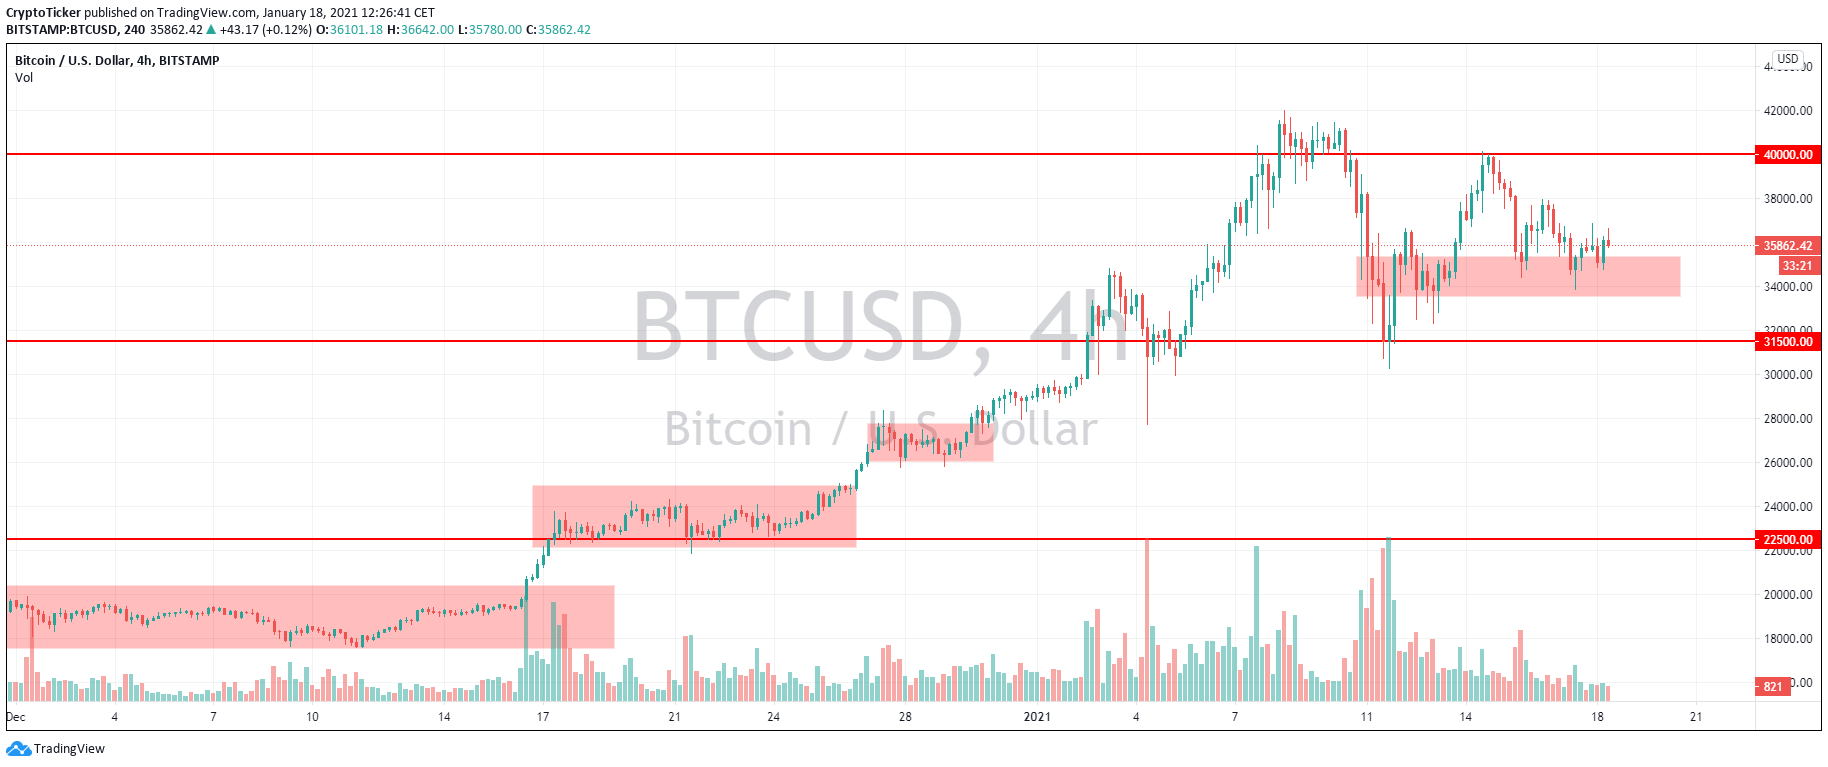 BTC/USD 4-hour chart showing consolidation areas after each uptrend